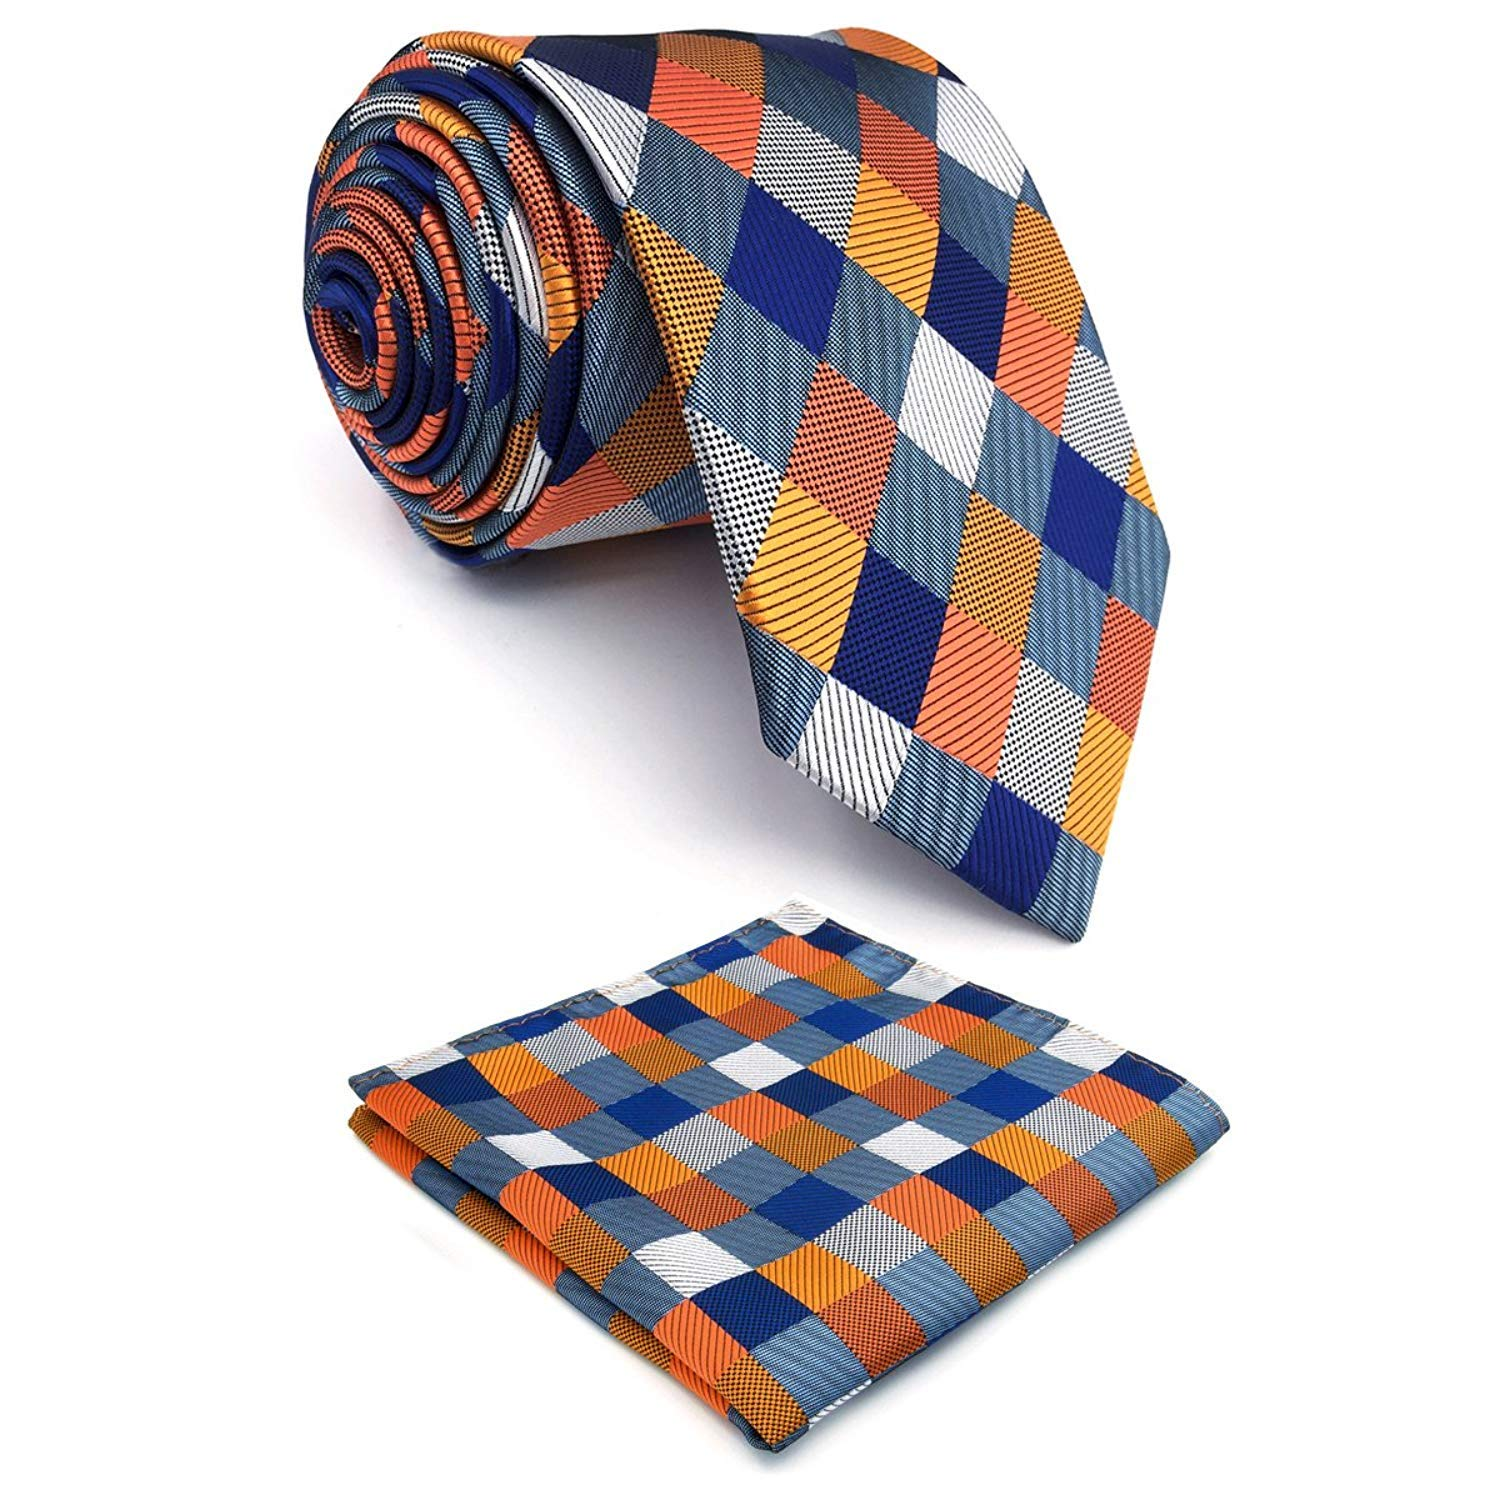 Shlax&Wing Mens Necktie Pocket Square Set 57.5 63 Extra Long Silk Tie Hanky NPSET2-CX20